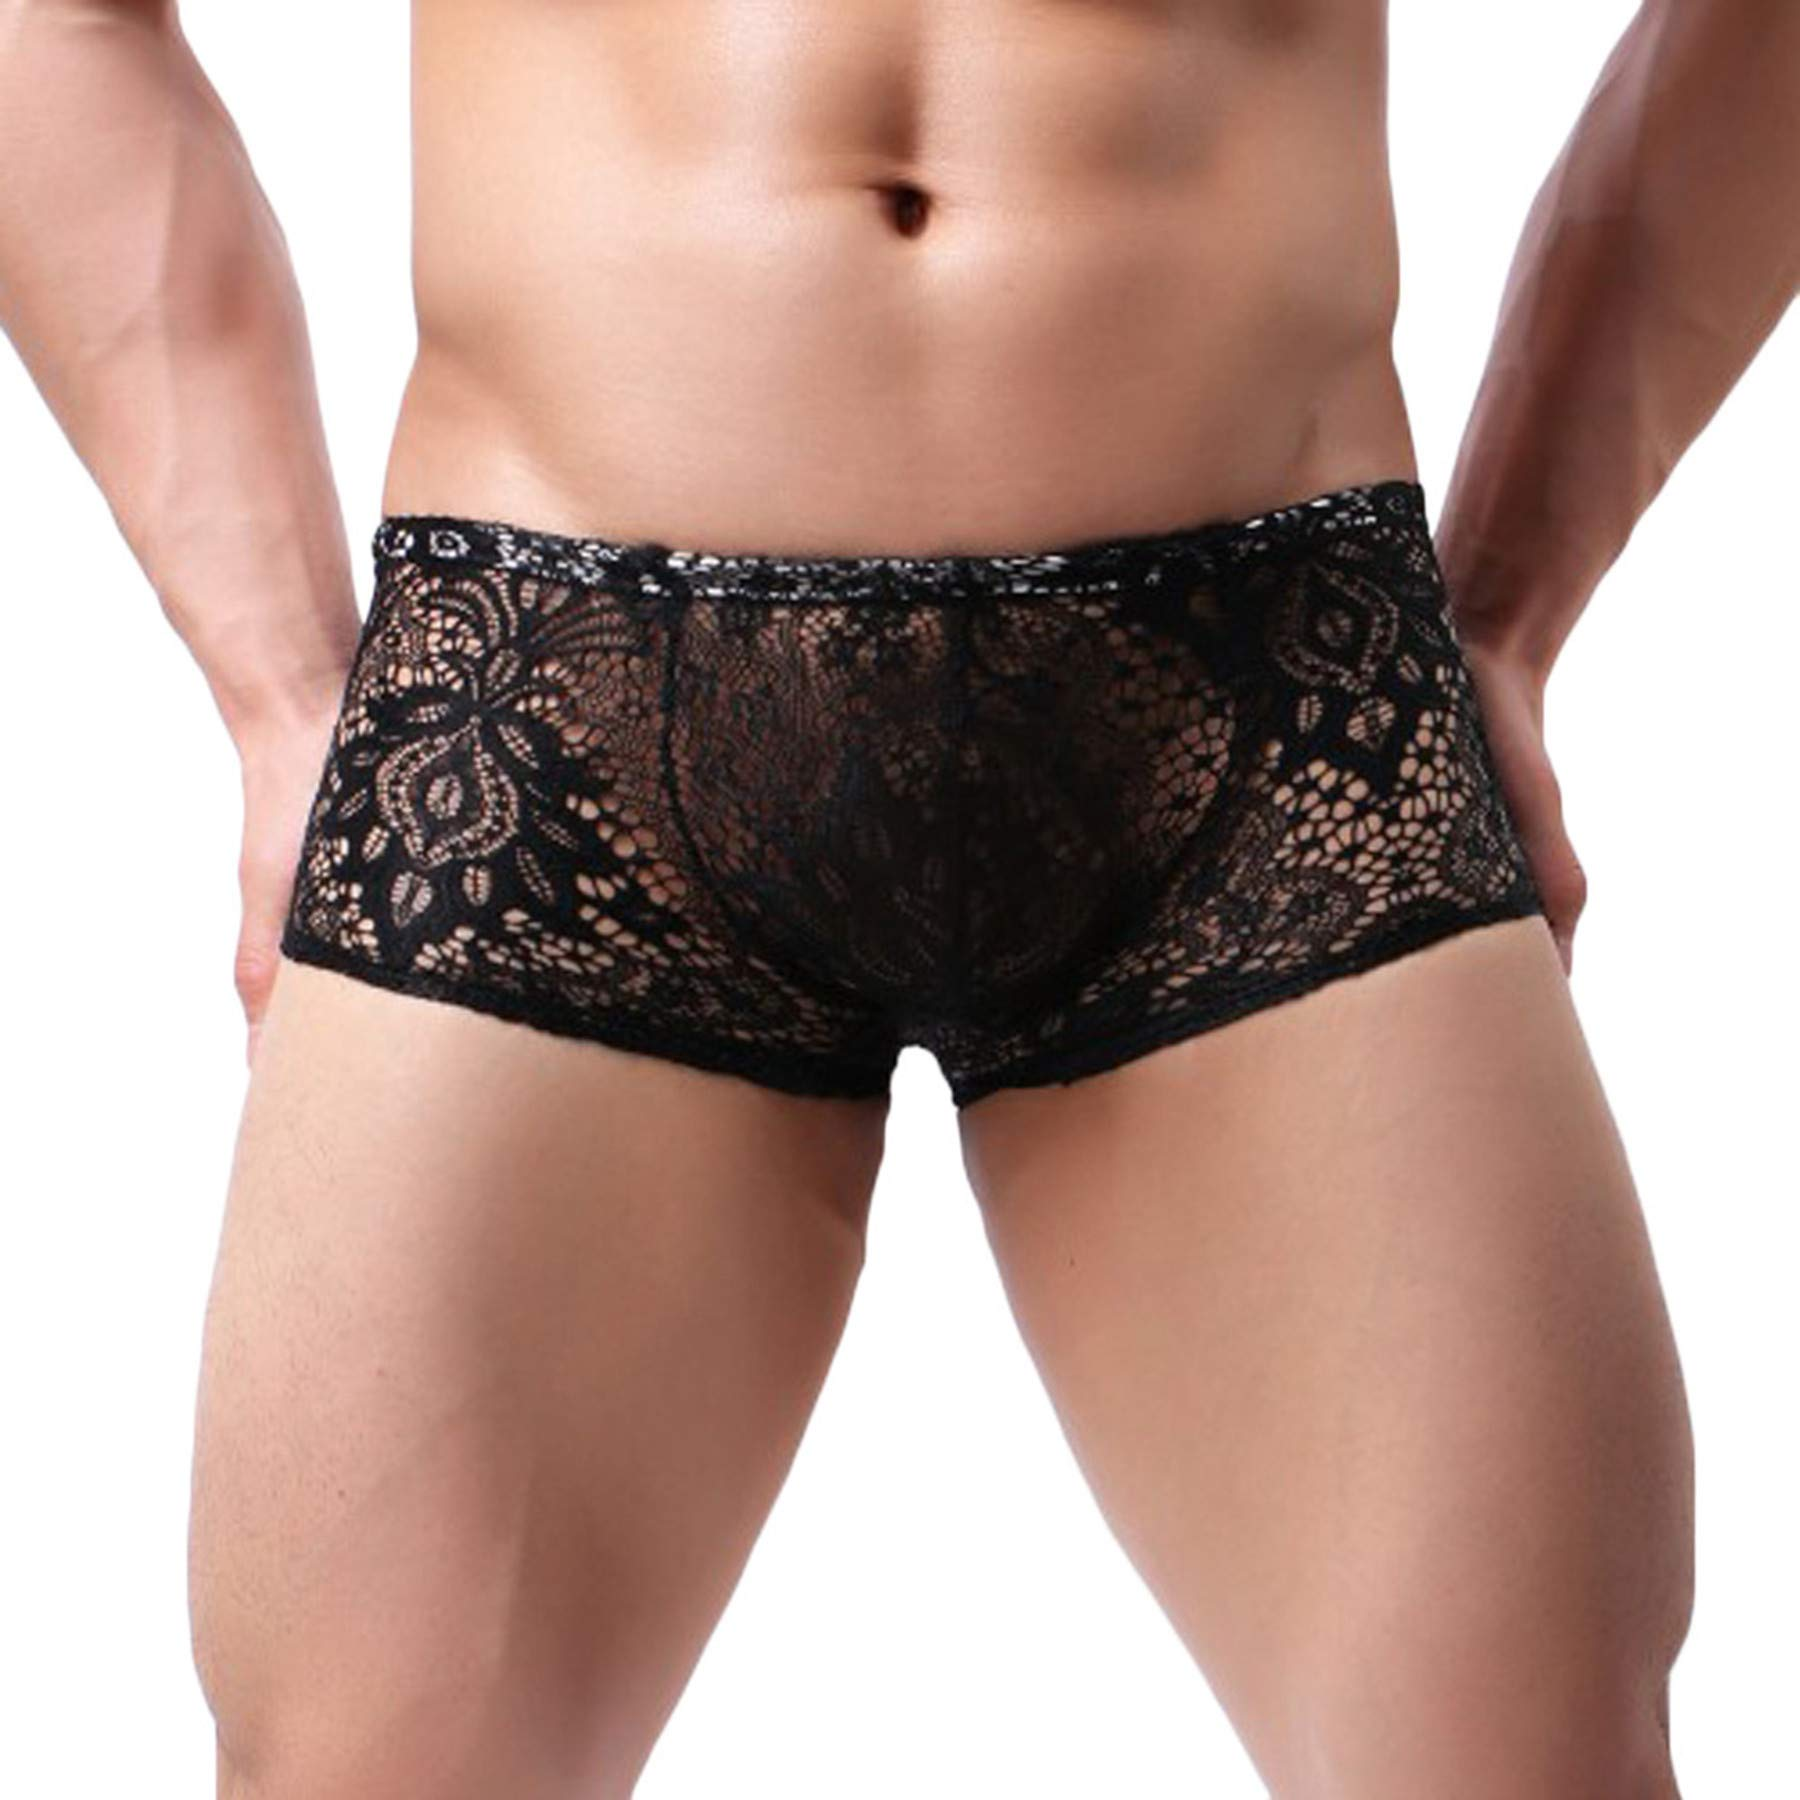 Lace Sexy See Through Boxer Briefs Sissy Pouch Panties Trunks Underwear Underpants Knickers for Mens (Black, L)